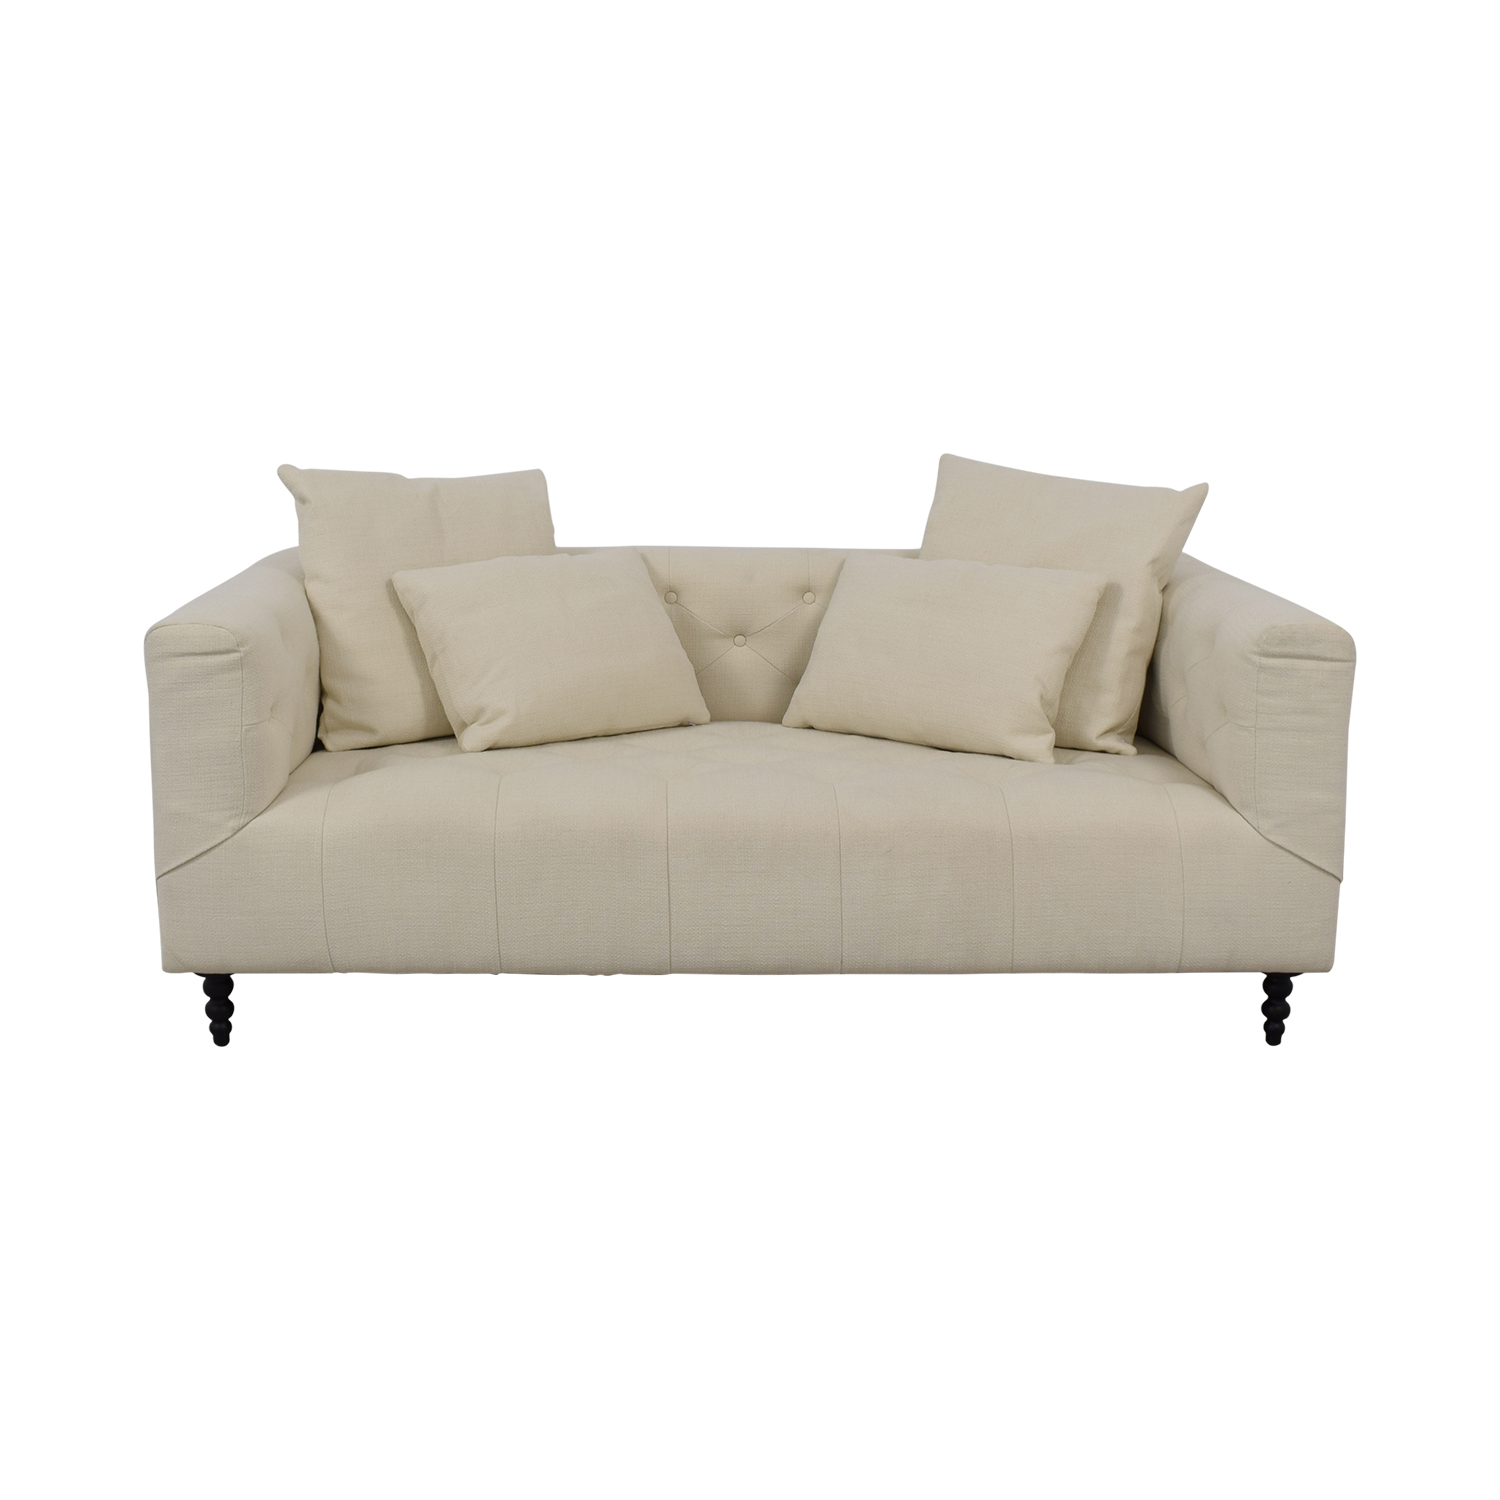 Interior Define Ms. Chesterfield Vanilla Tufted Single Cushion Sofa nj